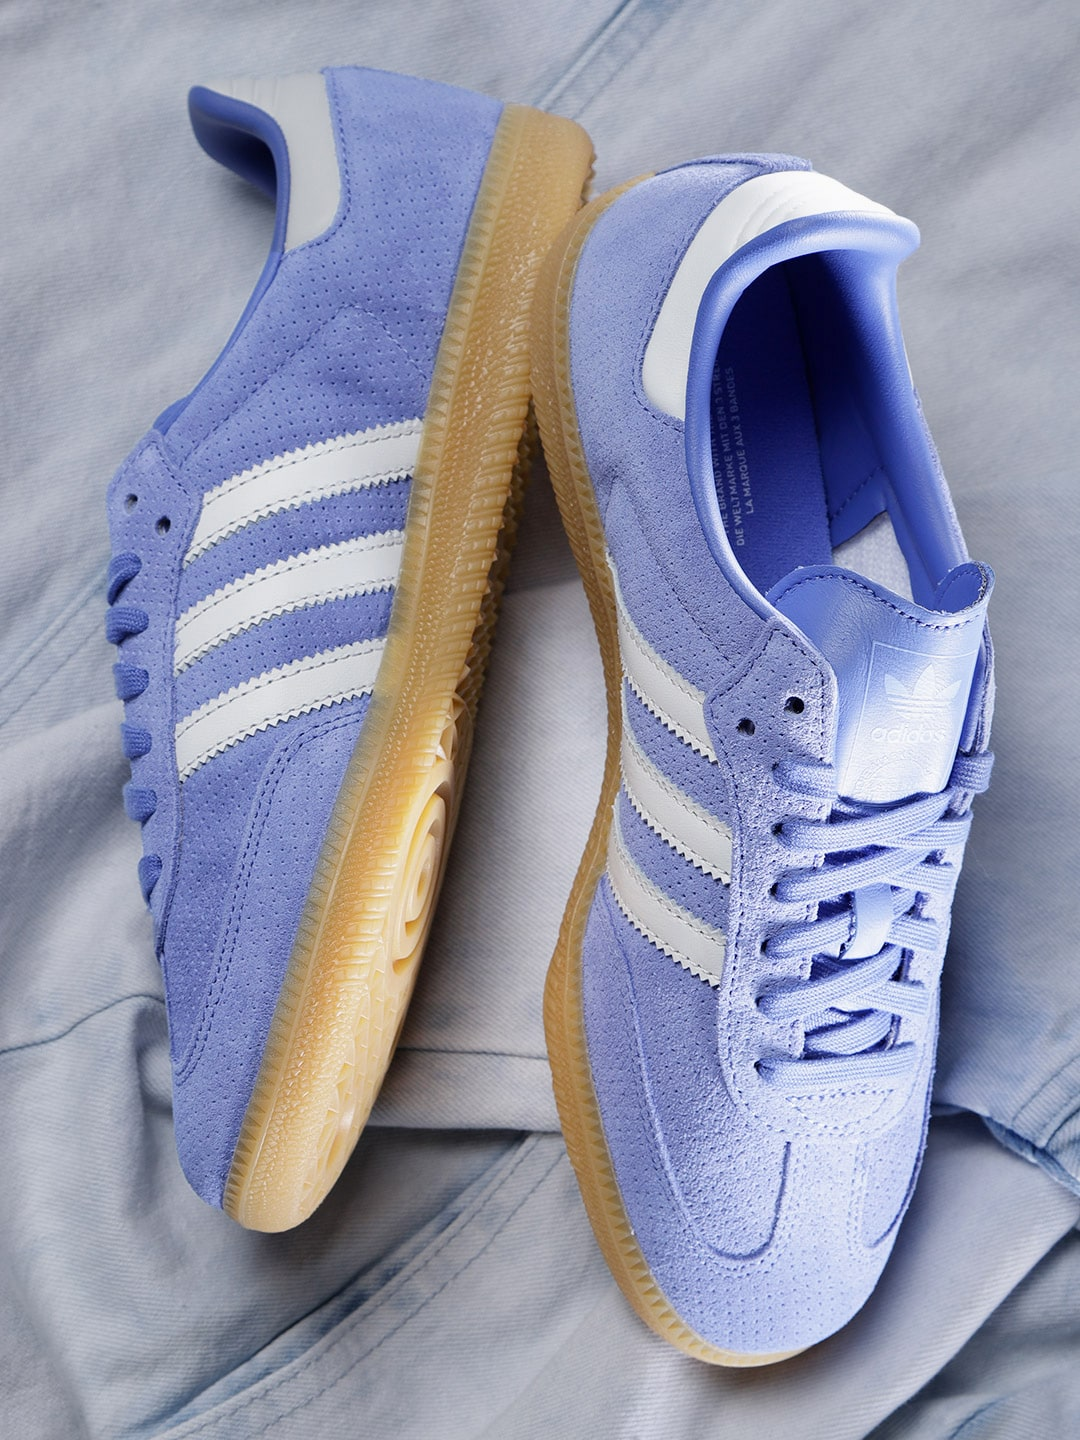 on sale 4a7a2 283e5 Adidas Samba Shoes - Buy Adidas Samba Shoes online in India